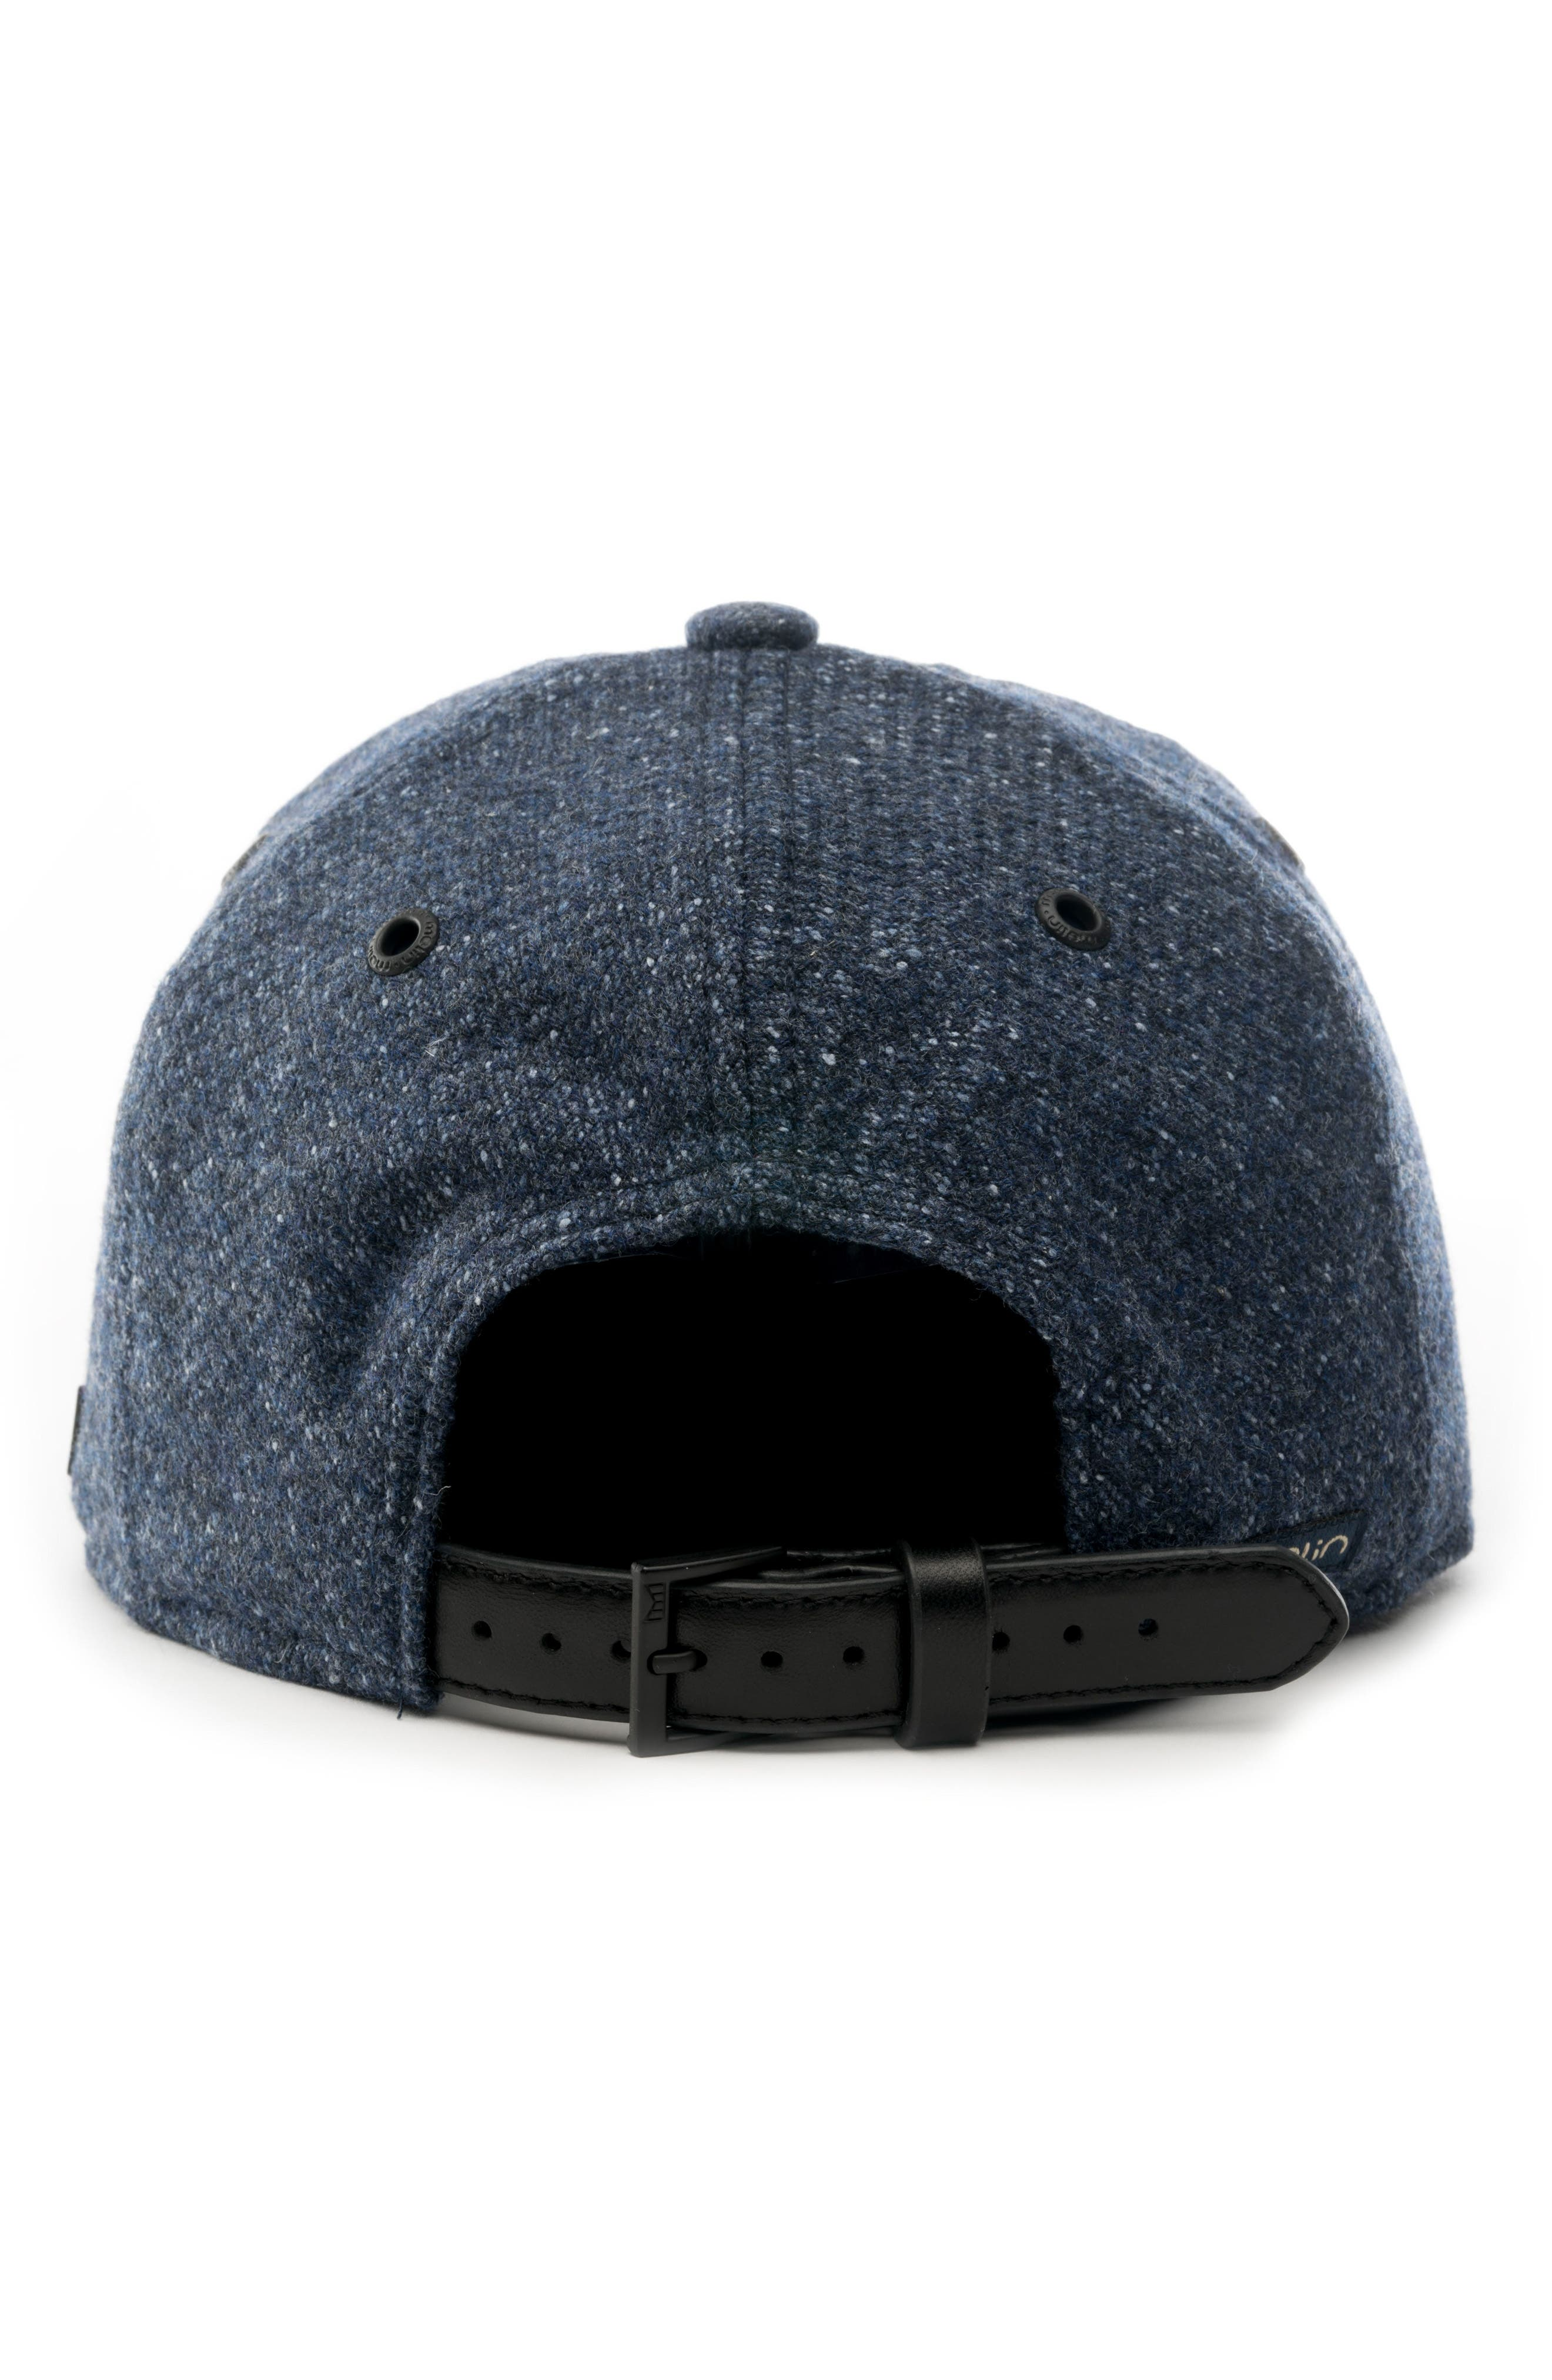 Kingpin Ball Cap,                             Alternate thumbnail 3, color,                             BLUE